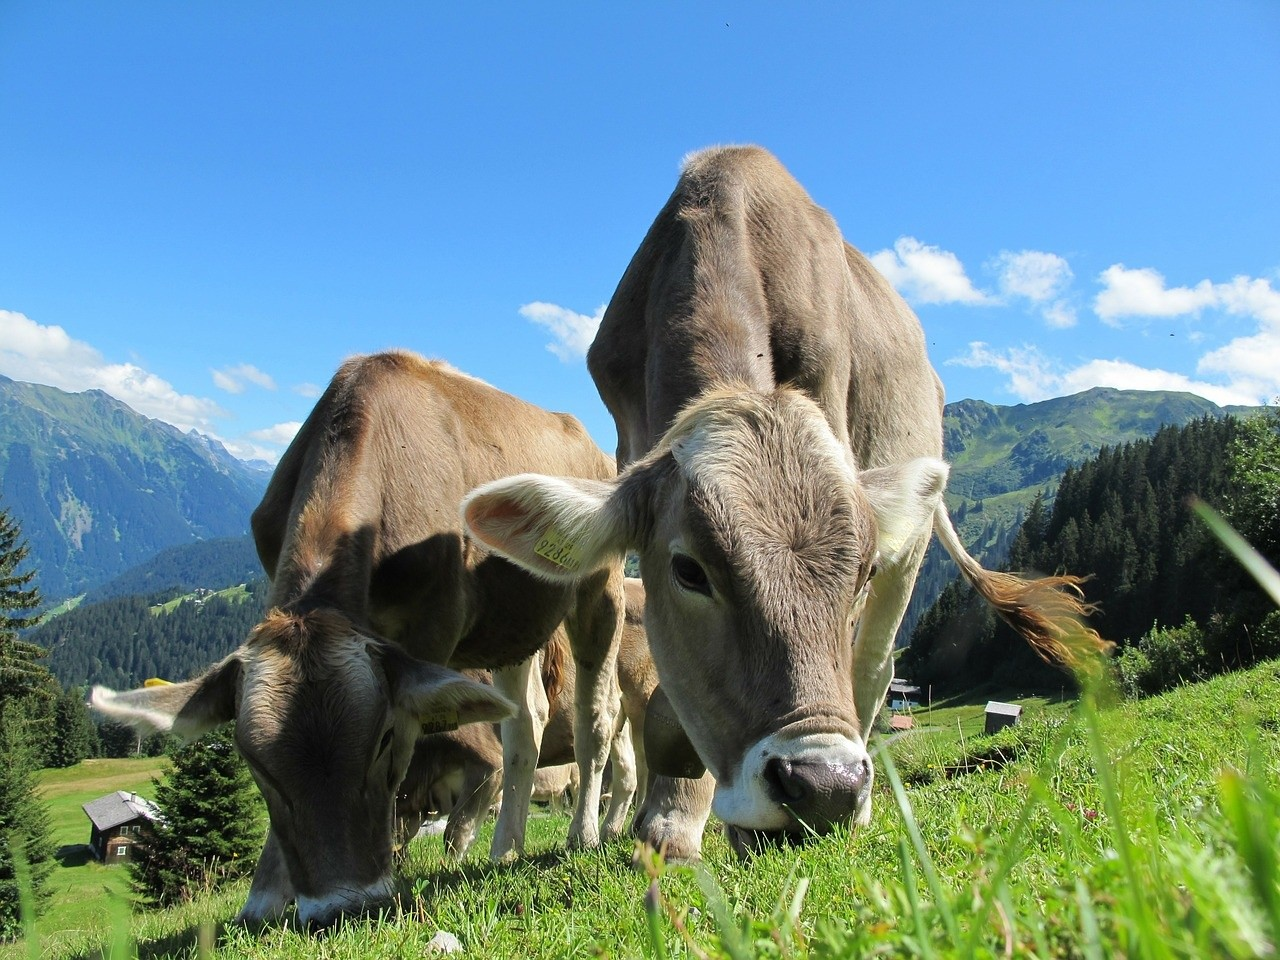 496_3127_cows-cow-203460_1280